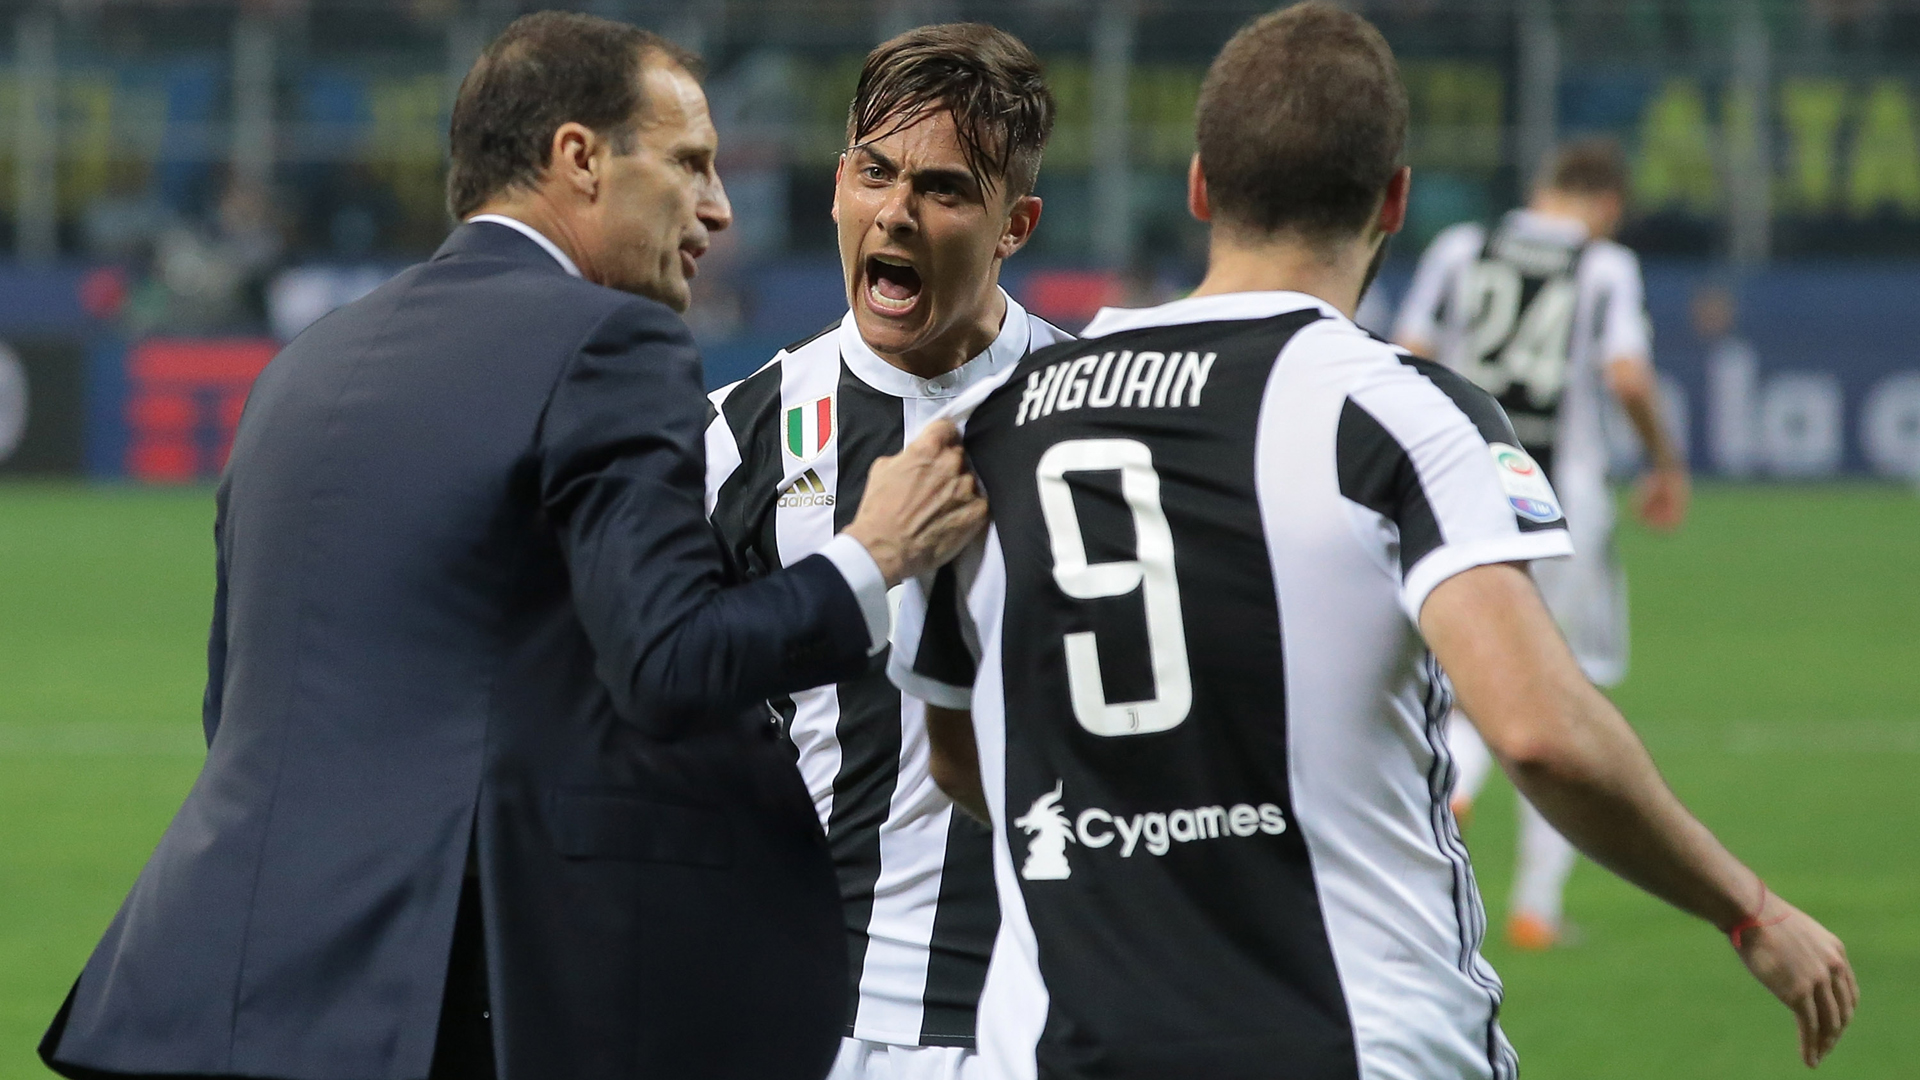 Serie A pendulum swings Juve's way after stunning Inter comback